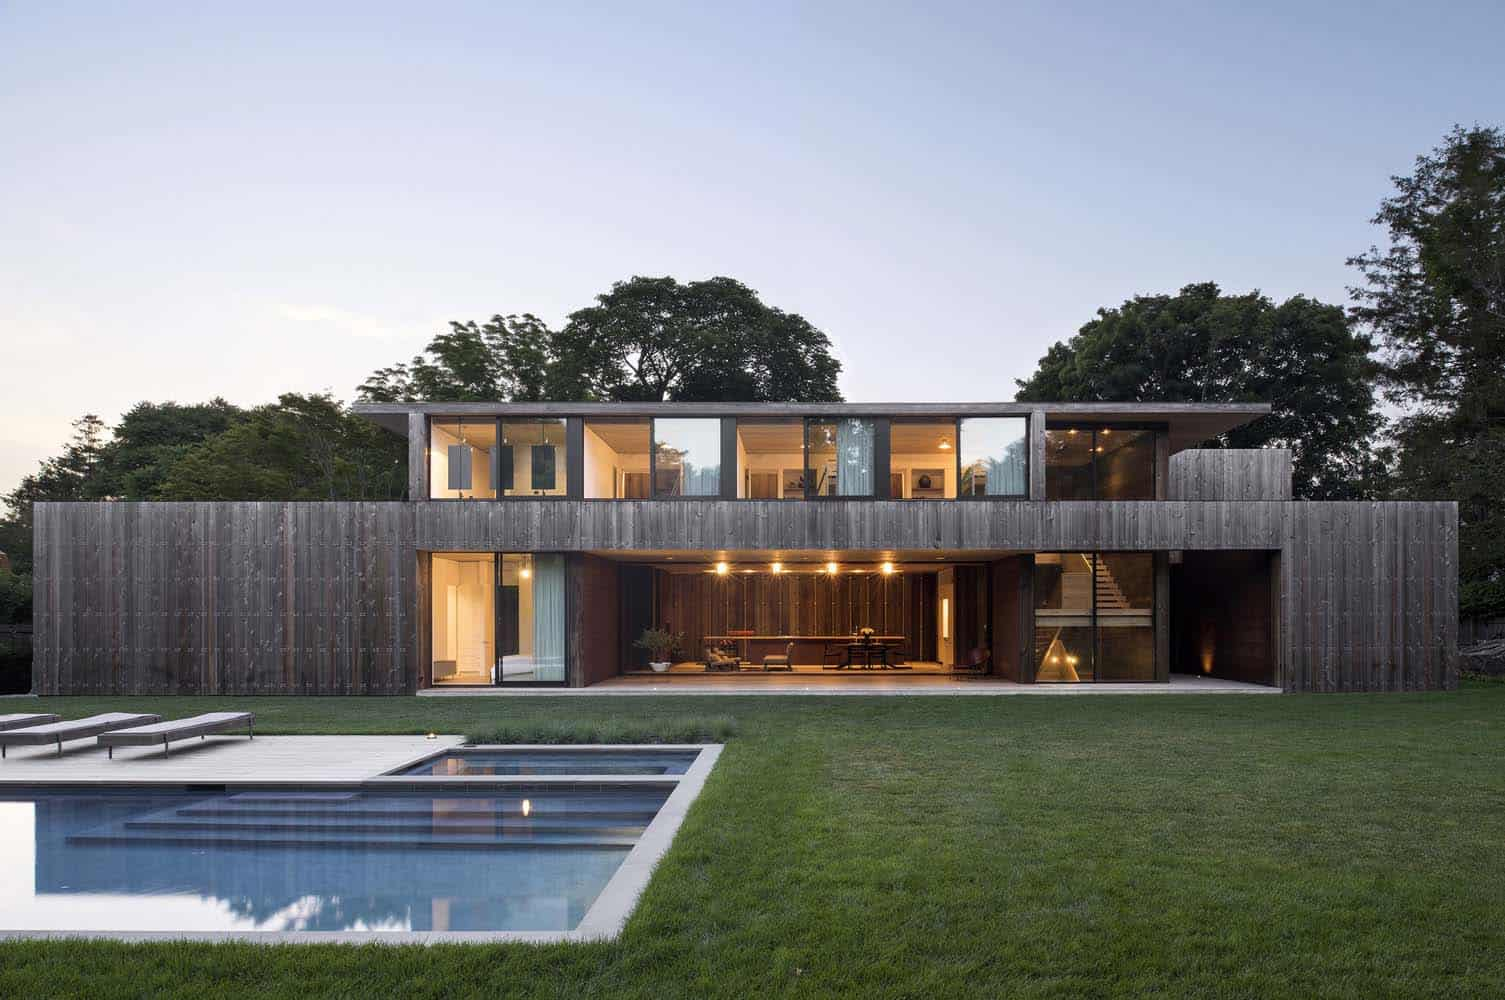 Architecture-Modern-Home-Bates Masi Architects-04-1 Kindesign